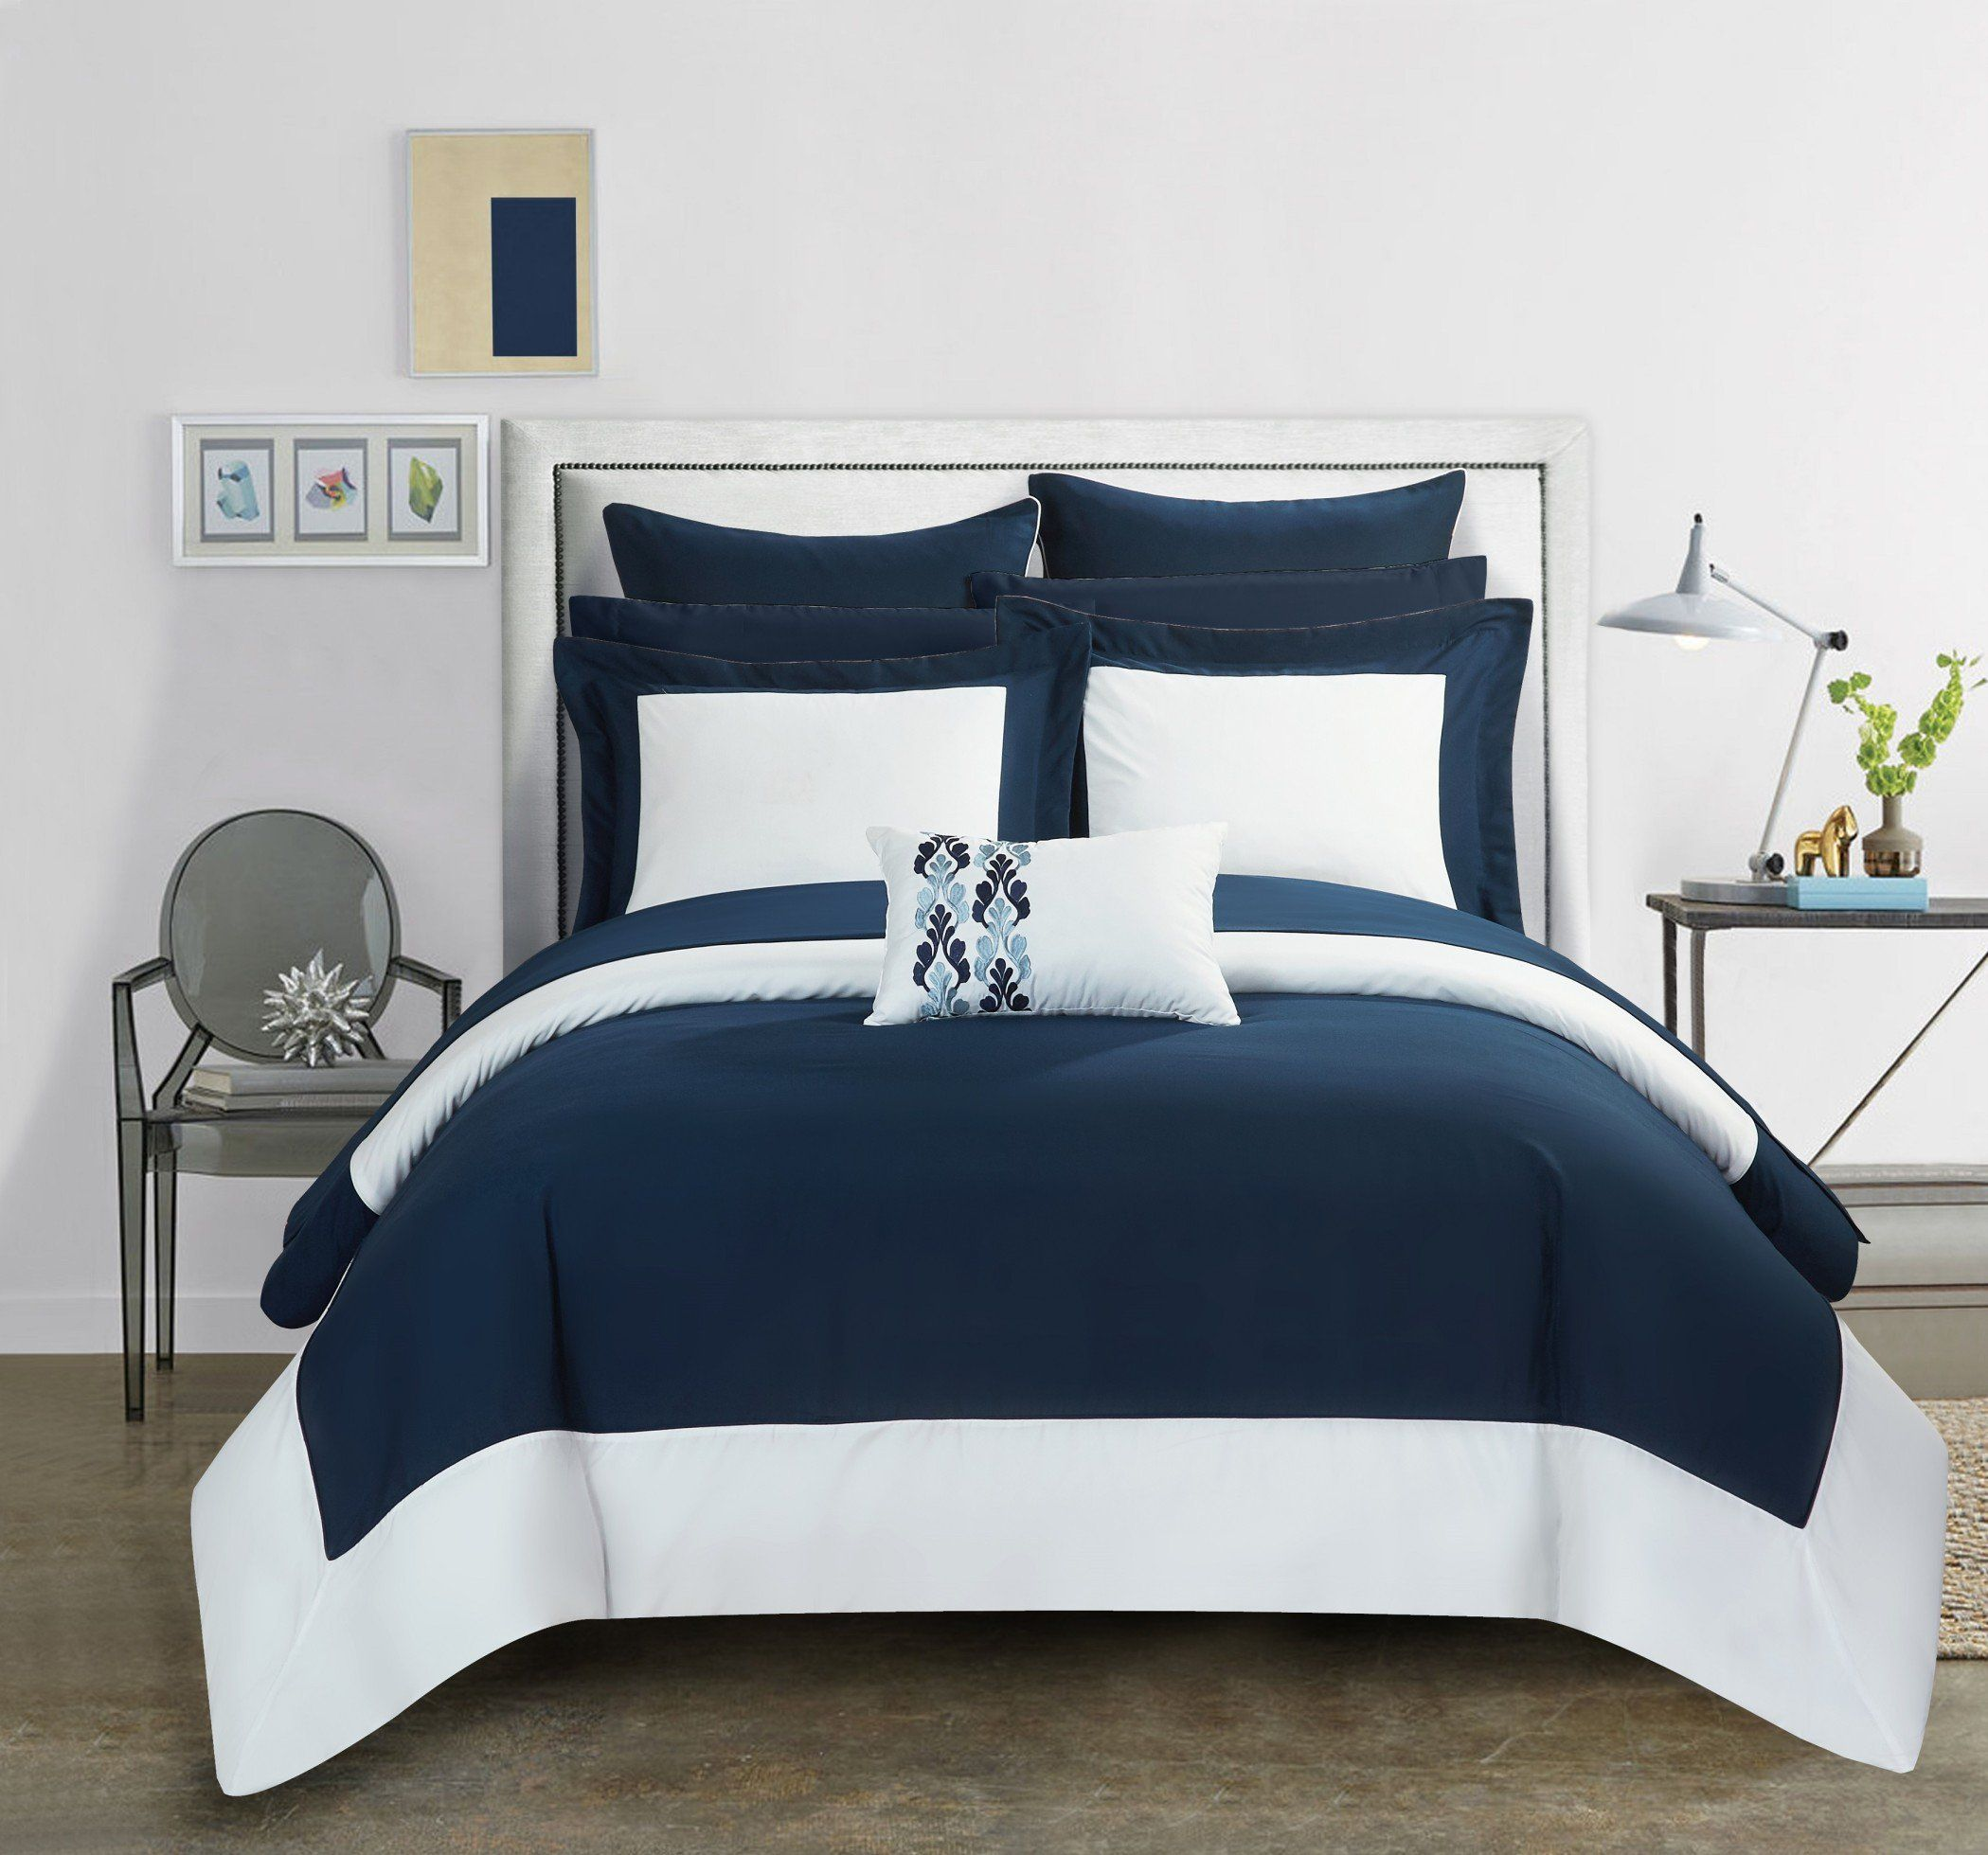 collection comforter in today bag set home bedding reversible sets free heldin hotel overstock product navy chic bath shipping bed piece a